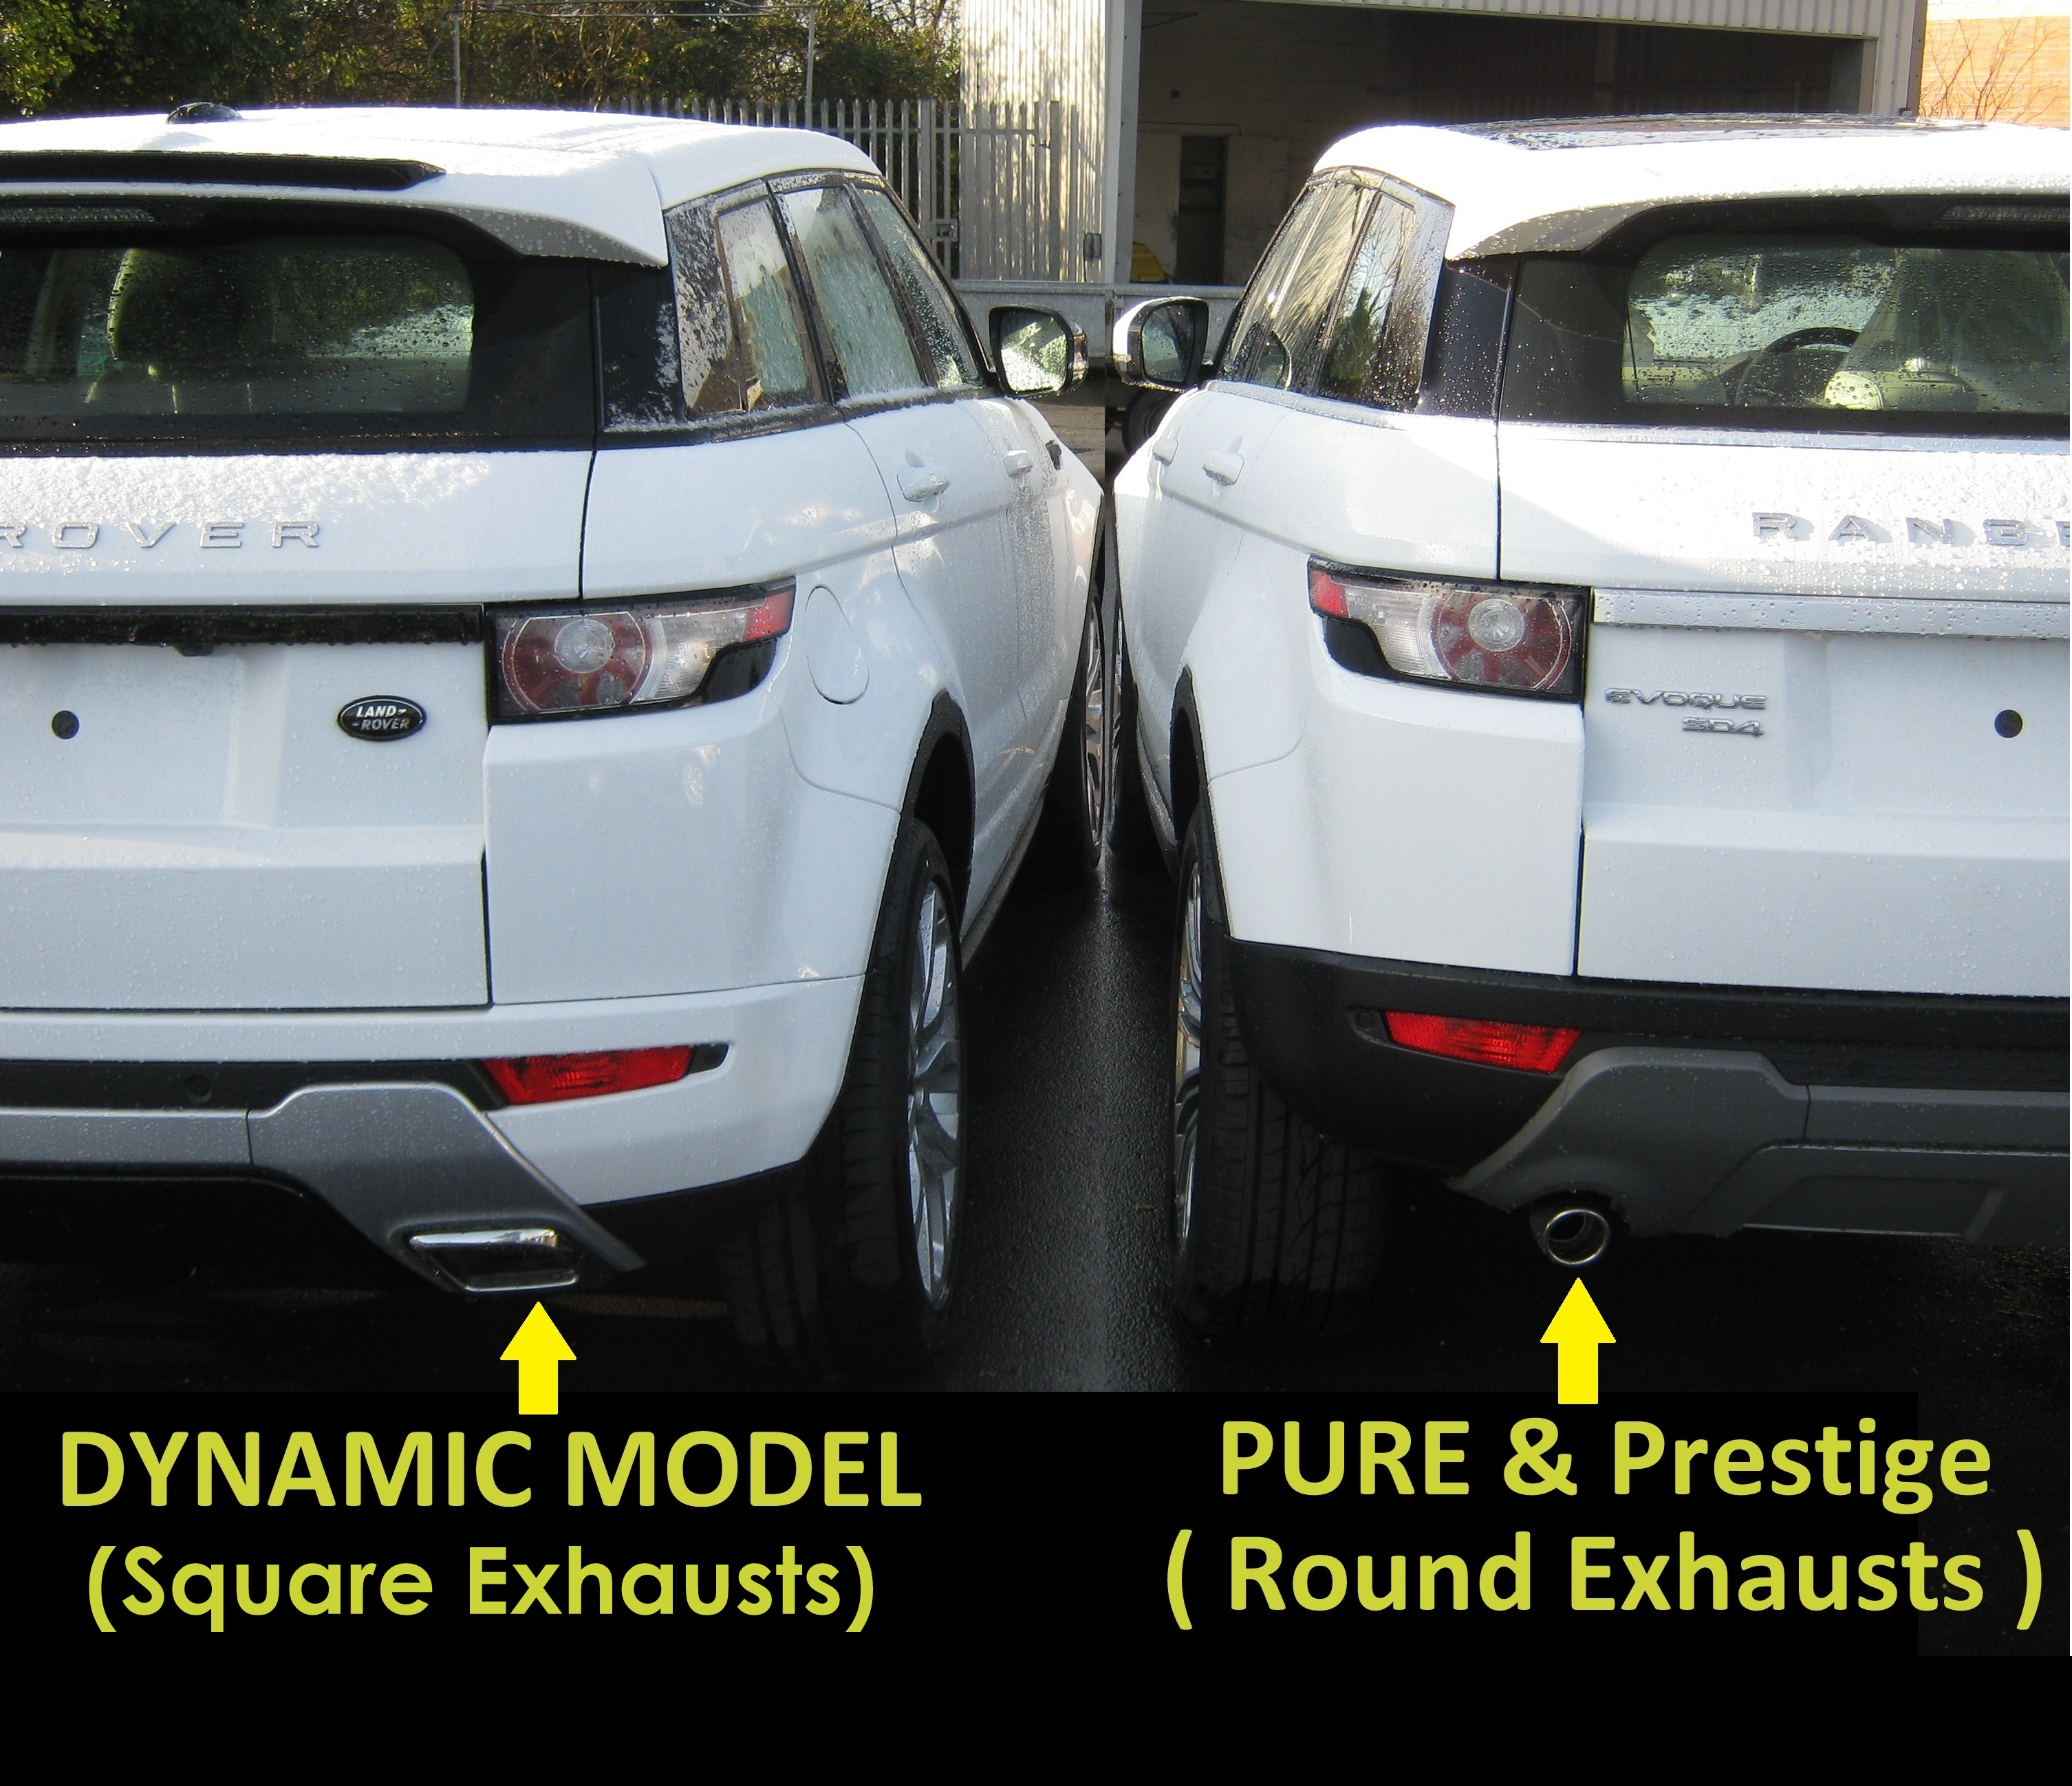 Used 2014 Land Rover Range Rover Evoque Pure Plus For Sale: Front Bumper Tow Eye Cover Spoiler Under Tray Range Rover